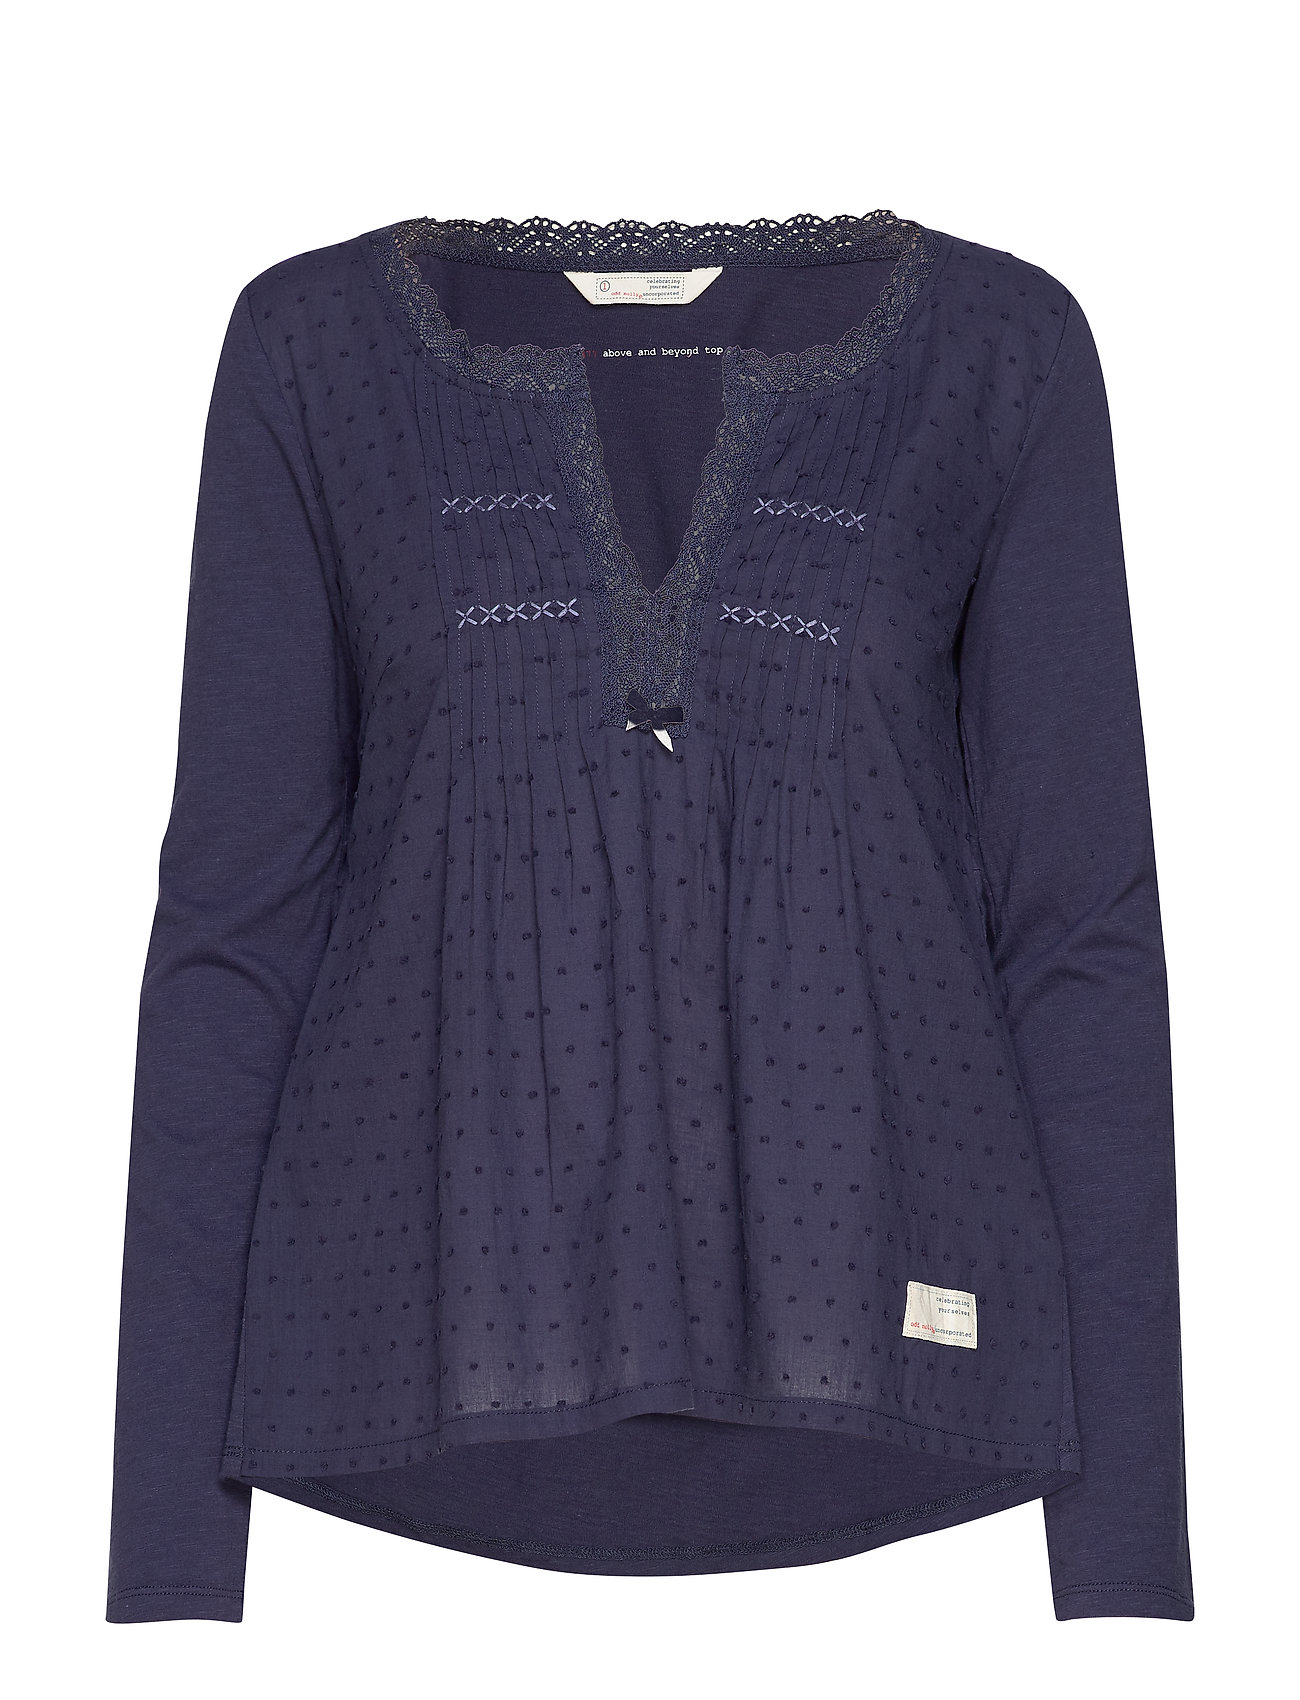 ODD MOLLY Above And Beyond Top - DARK BLUE